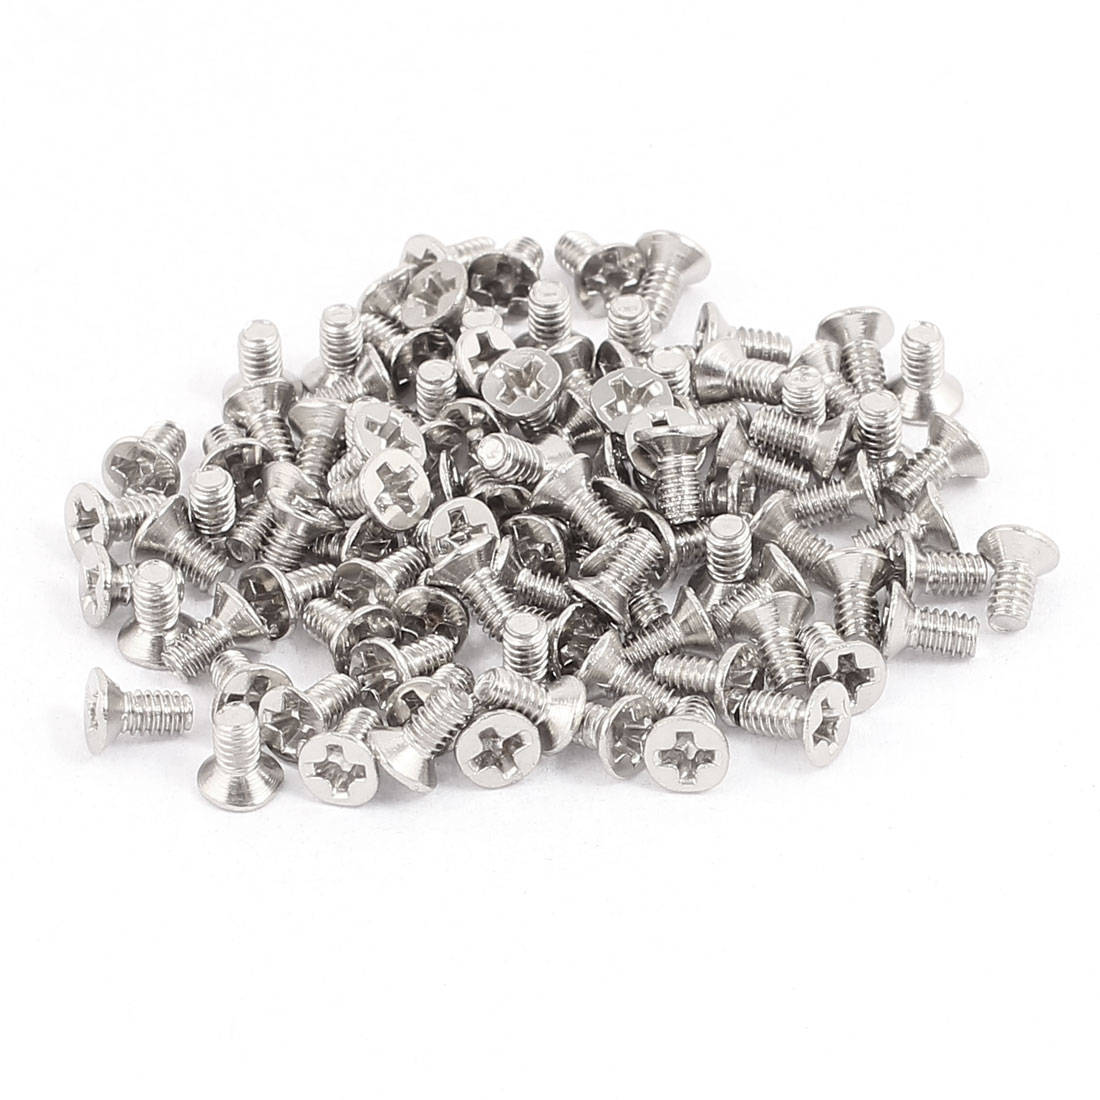 100pcs M2x4mm Stainless Steel Countersunk Phillips Flat Head Machine Screw Bolts